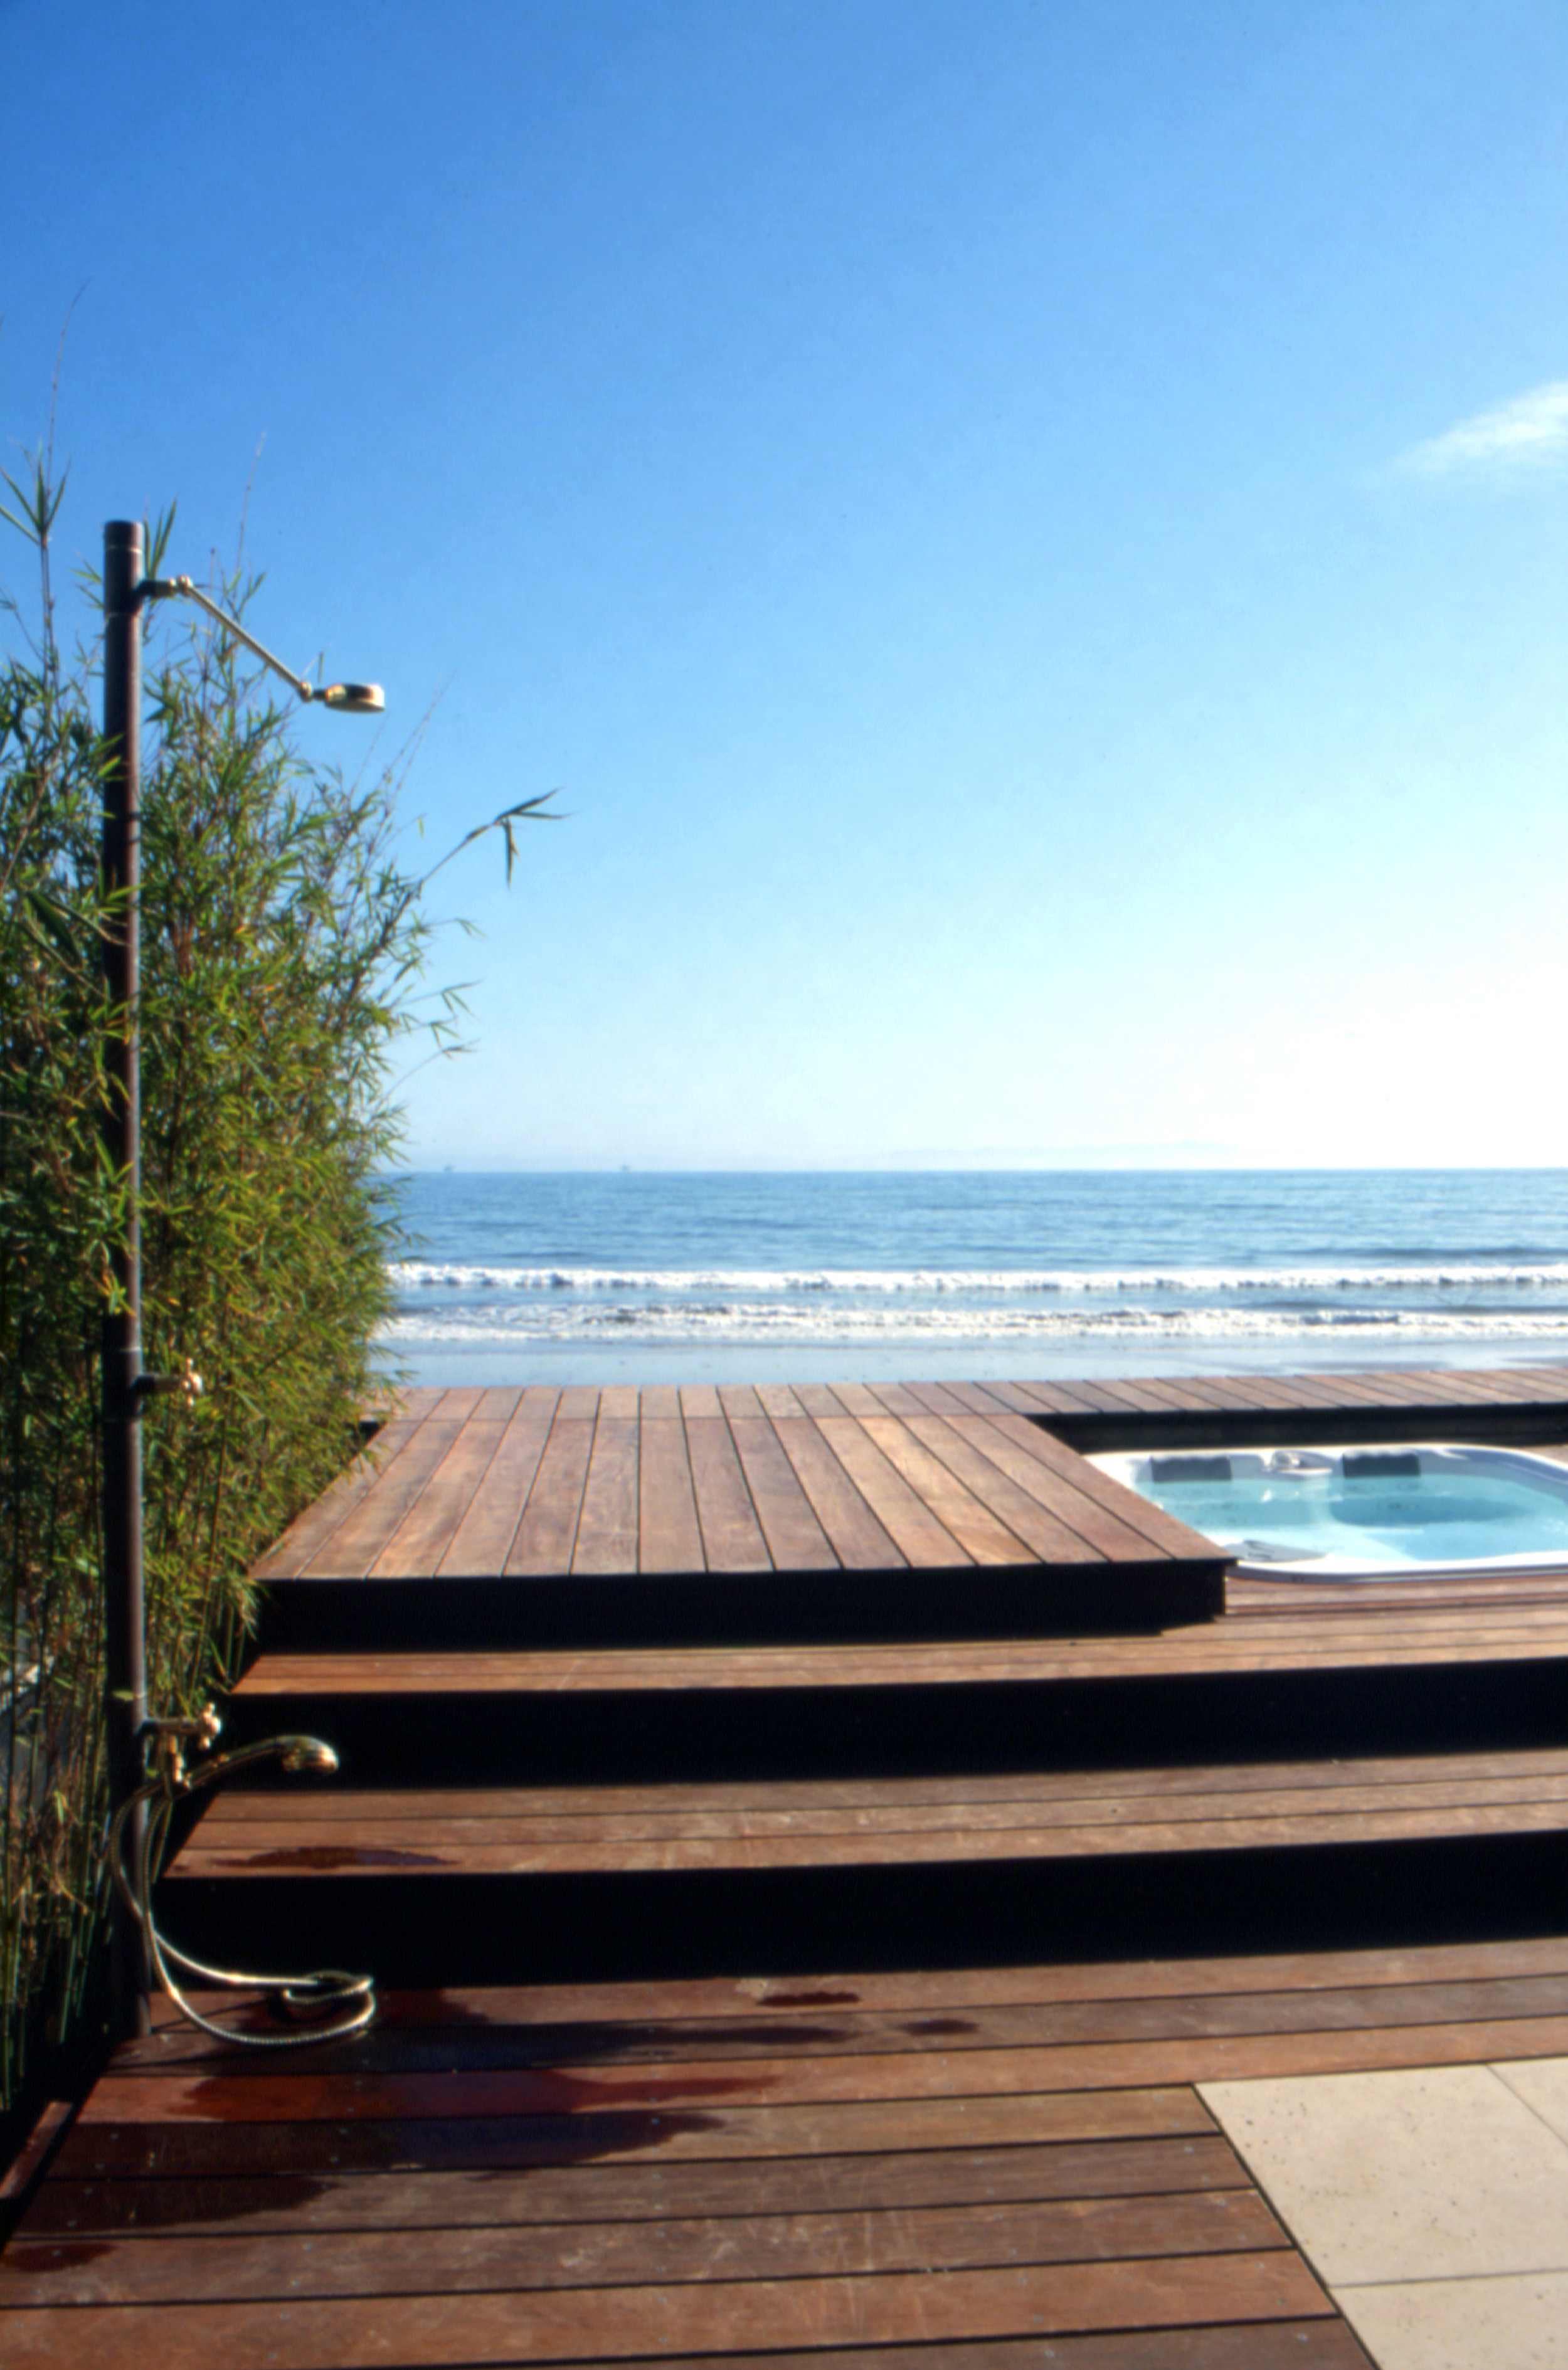 S.E.A.-Studio-Environmental-Architecture-David-Hertz-FAIA-Hall-Dreyfus-Beach-House-Montecito-California-sustainable-regenerative-restorative-design-residential-contemporary-modern-ocean-view-concrete-wood-remodel-SoCal-waterfront-scenic-studioea-9.jpg